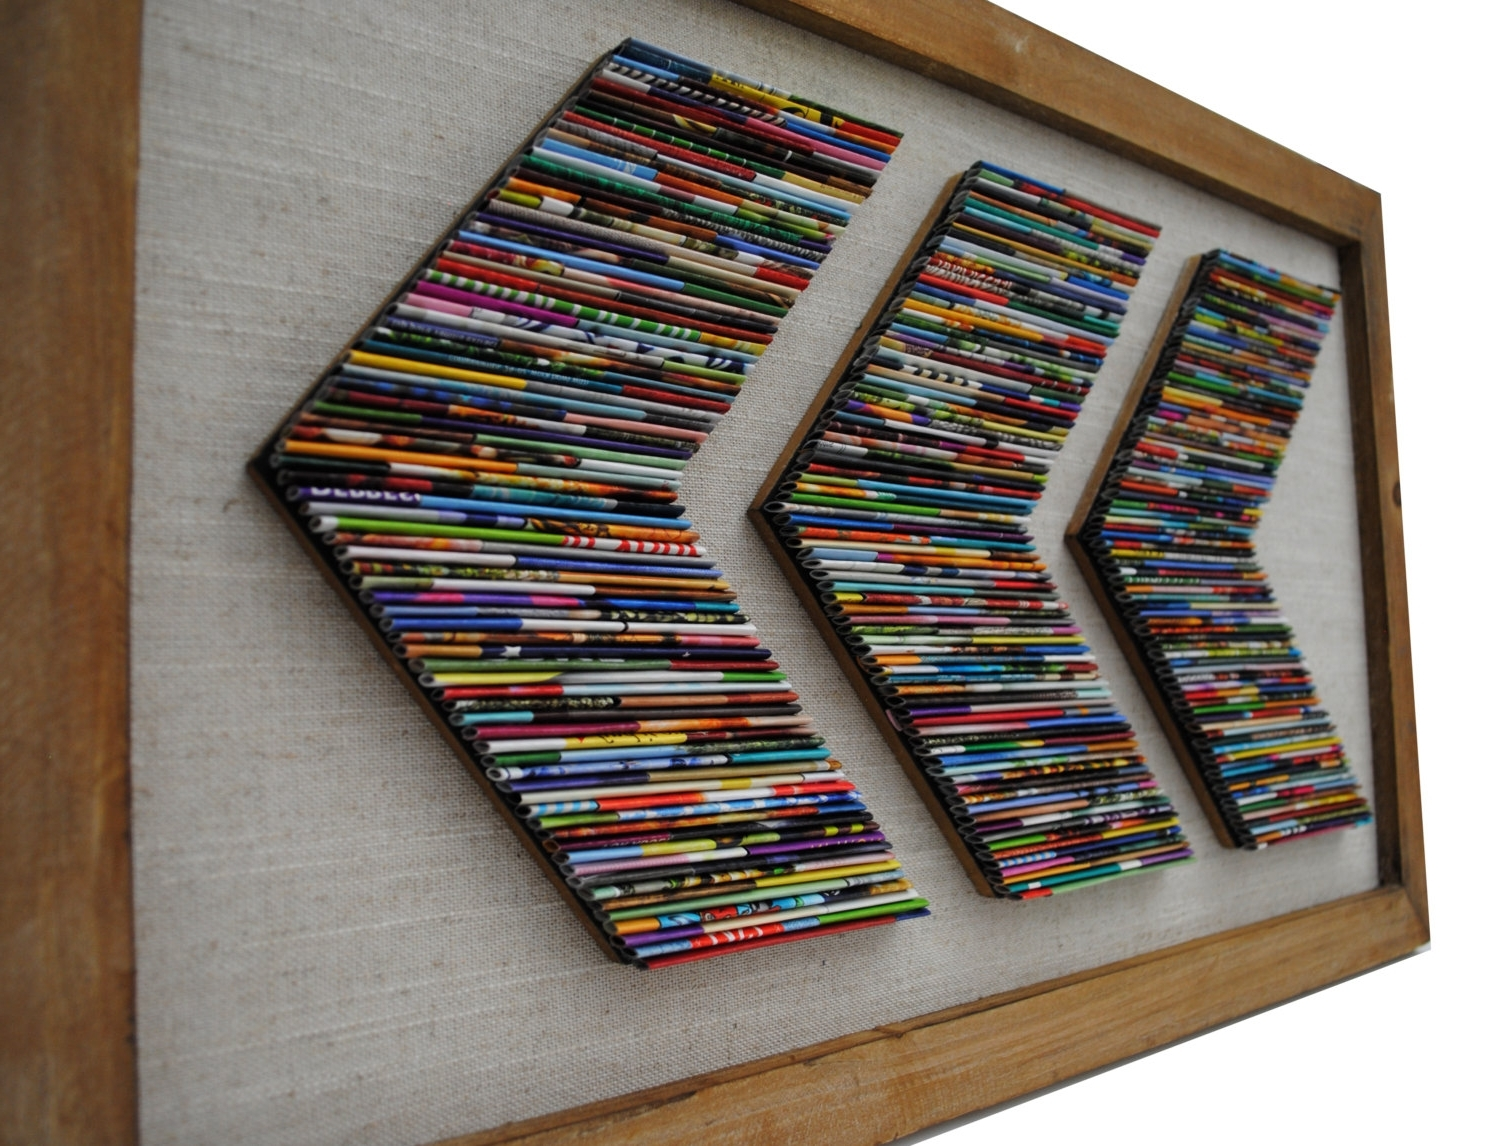 Fashionable Chevron Recycled Magazine Wall Art  Made From Recycled Magazines Intended For Recycled Wall Art (View 3 of 15)